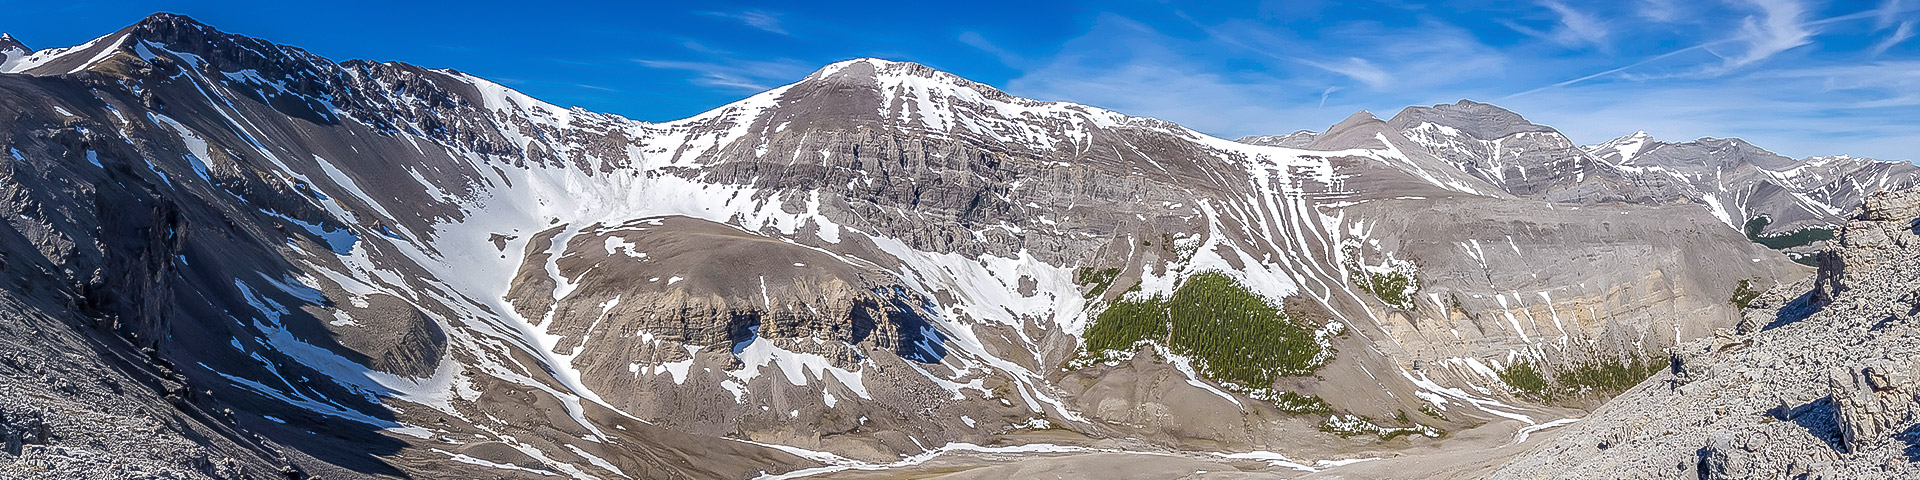 Panorama from Mount Howard scramble in Kananaskis, the Canadian Rockies